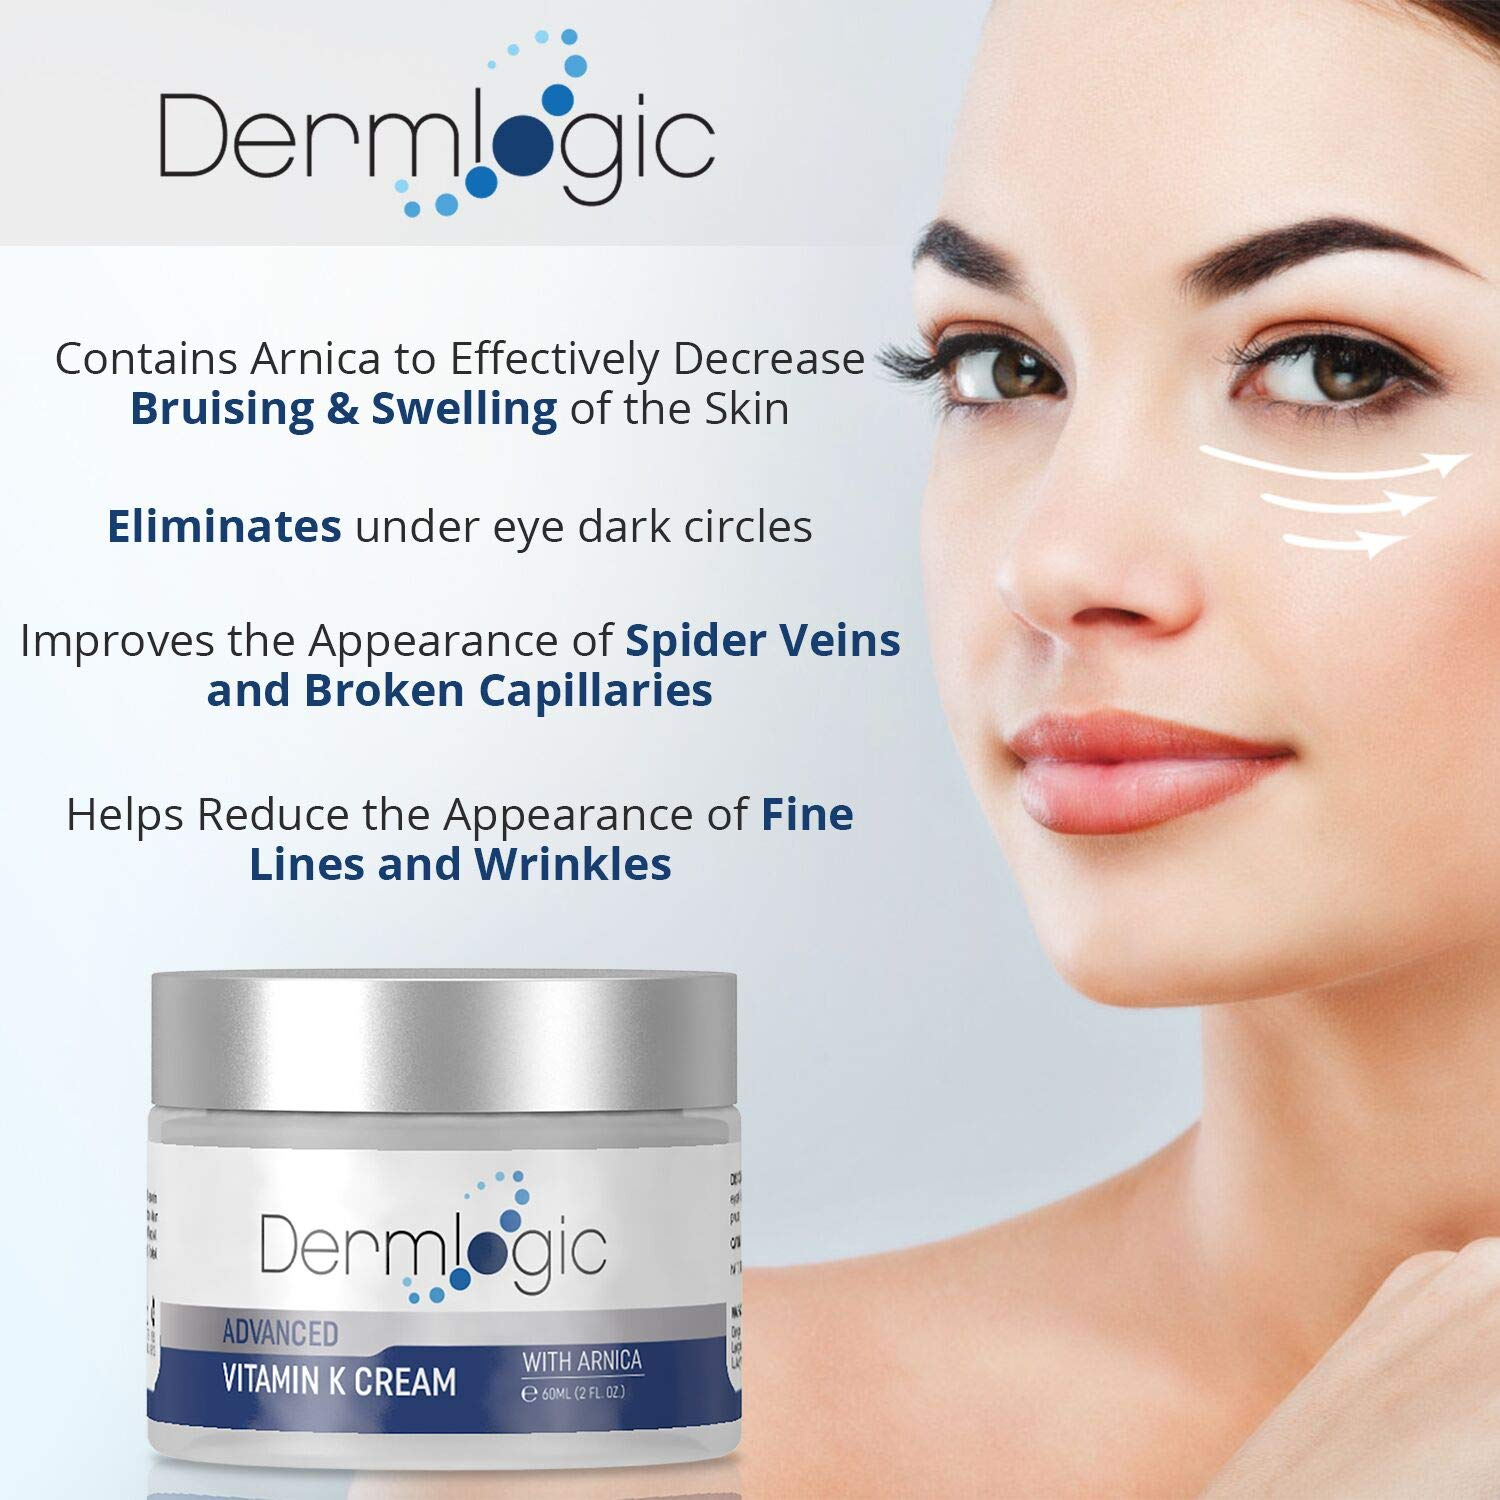 Vitamin K Cream- Moisturizing Bruise Healing Formula. Dark Spot Corrector for Bruising, Spider Veins & Broken Capillaries. Reduces Under Eye Dark Circles, Fine Lines, Puffiness, Wrinkles with Arnica by Dermlogic (Image #2)